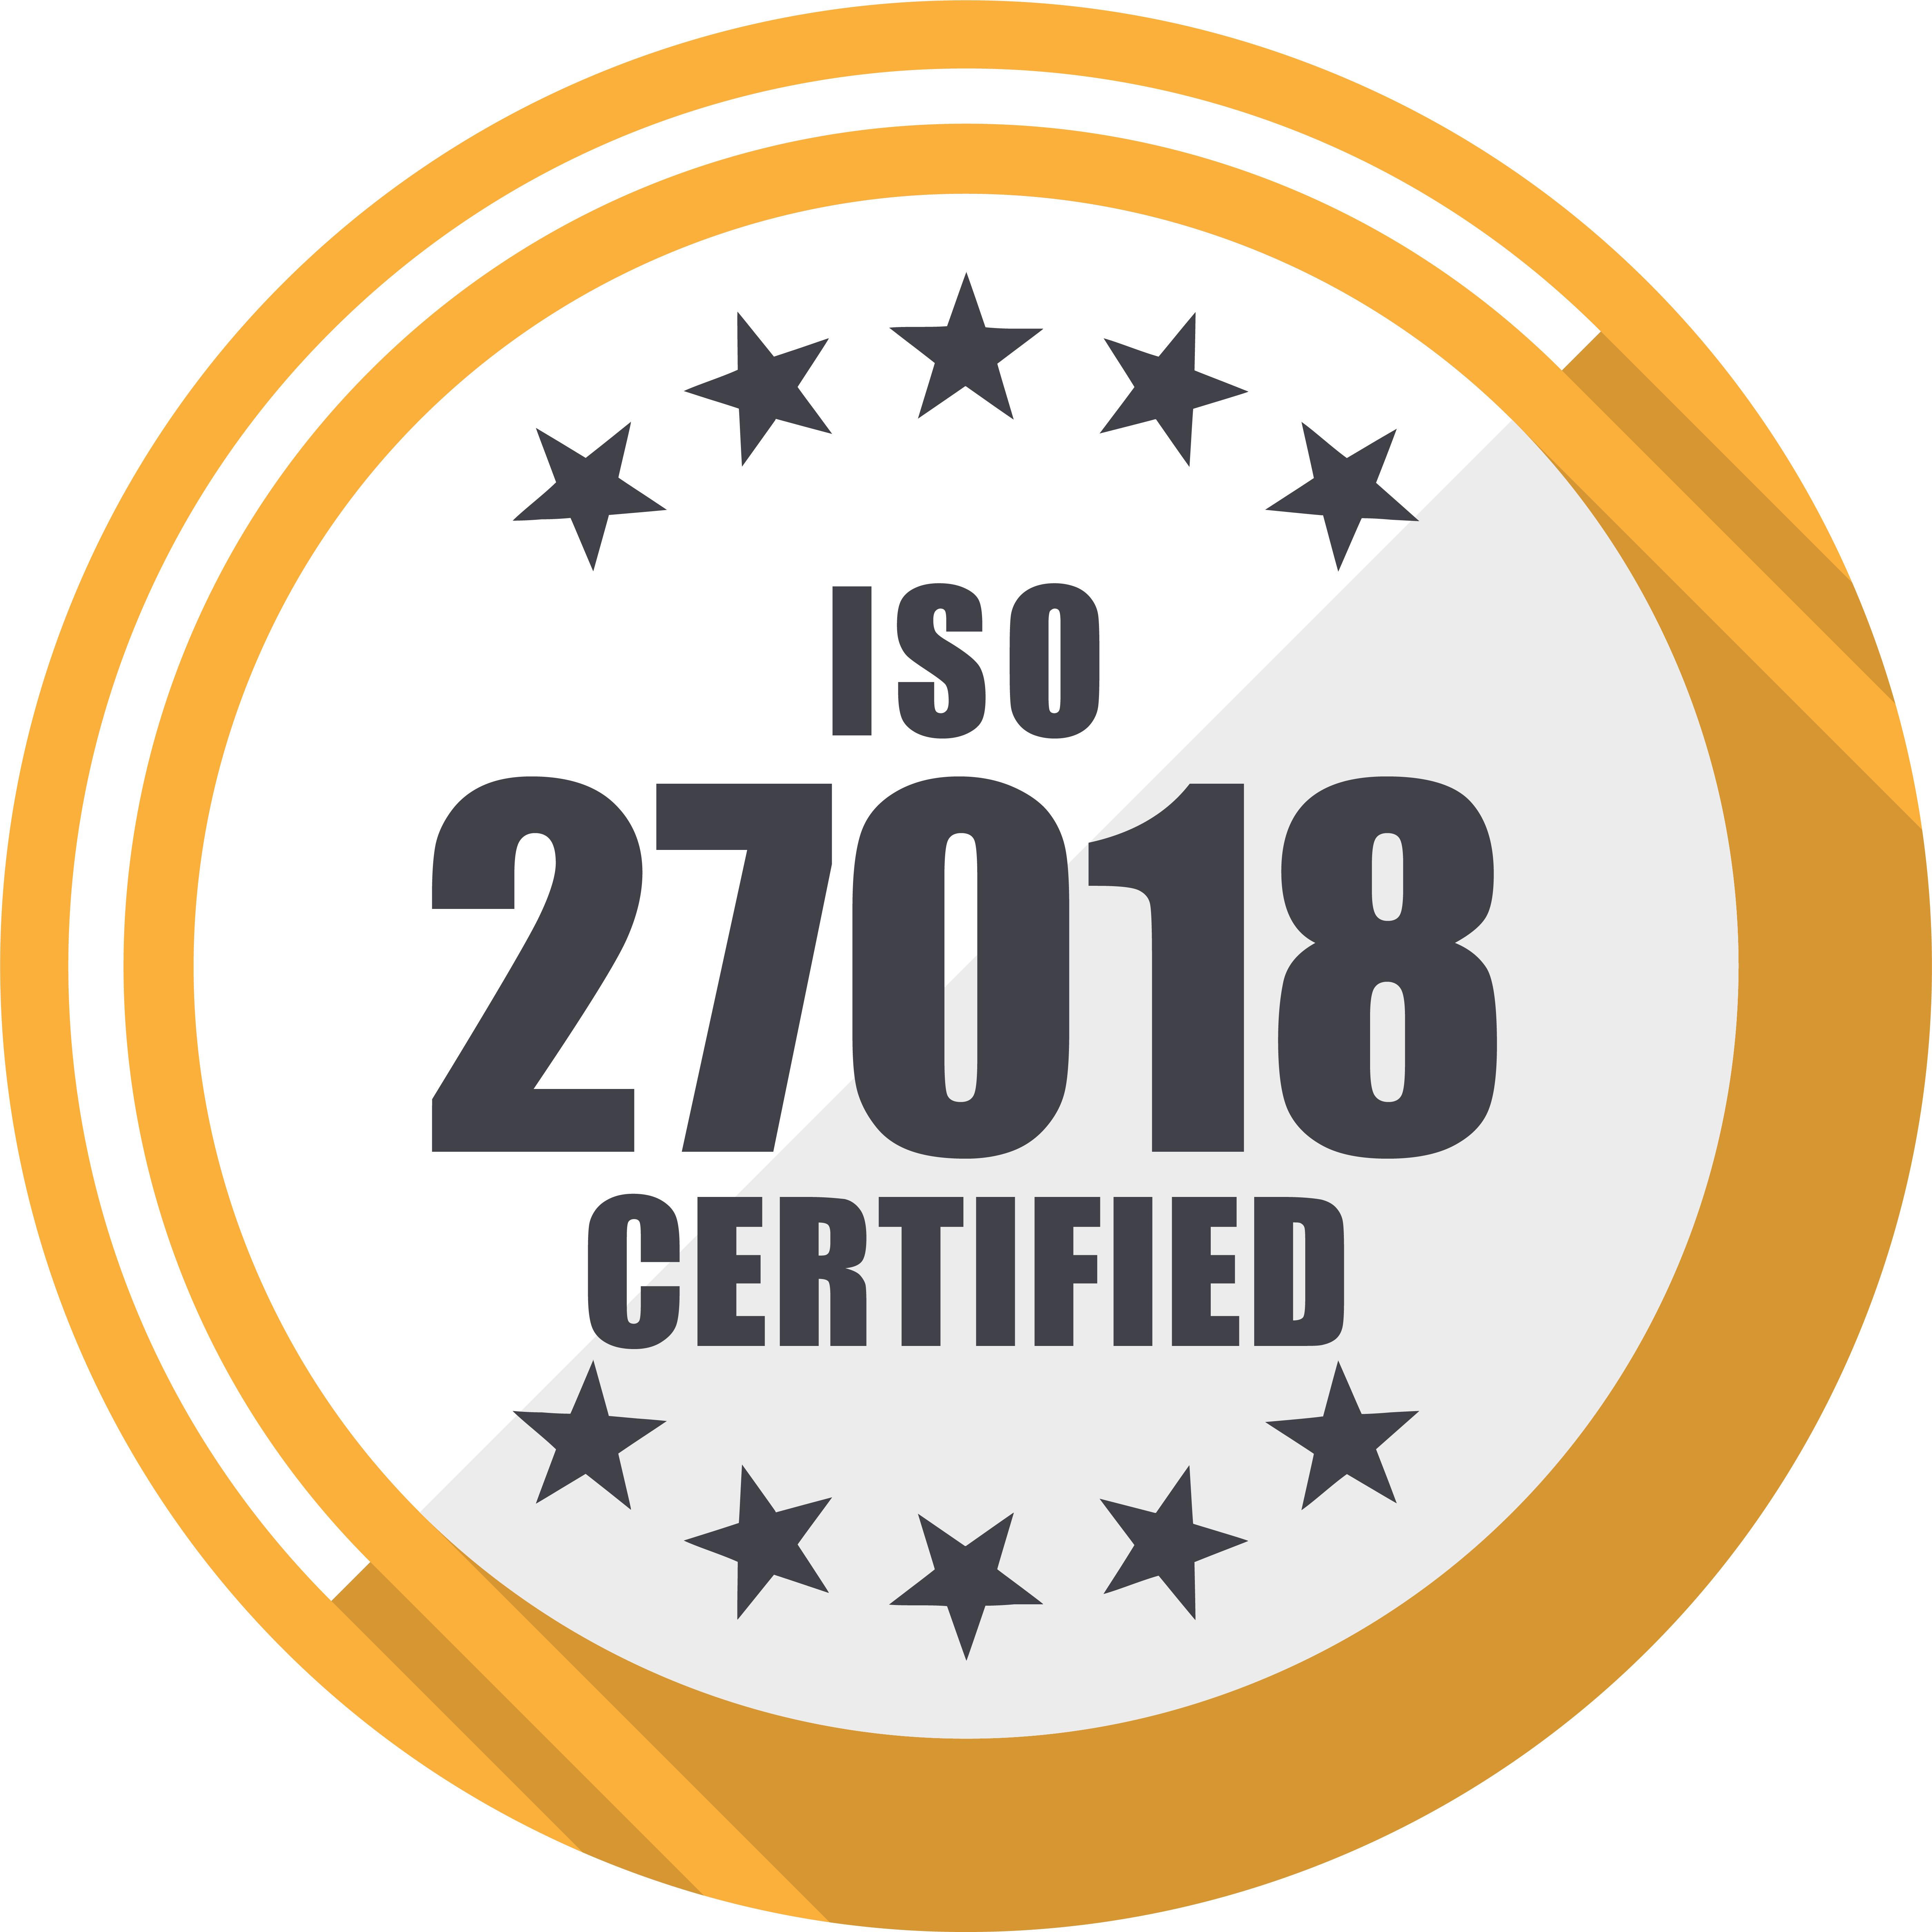 ISO 27018 Certified